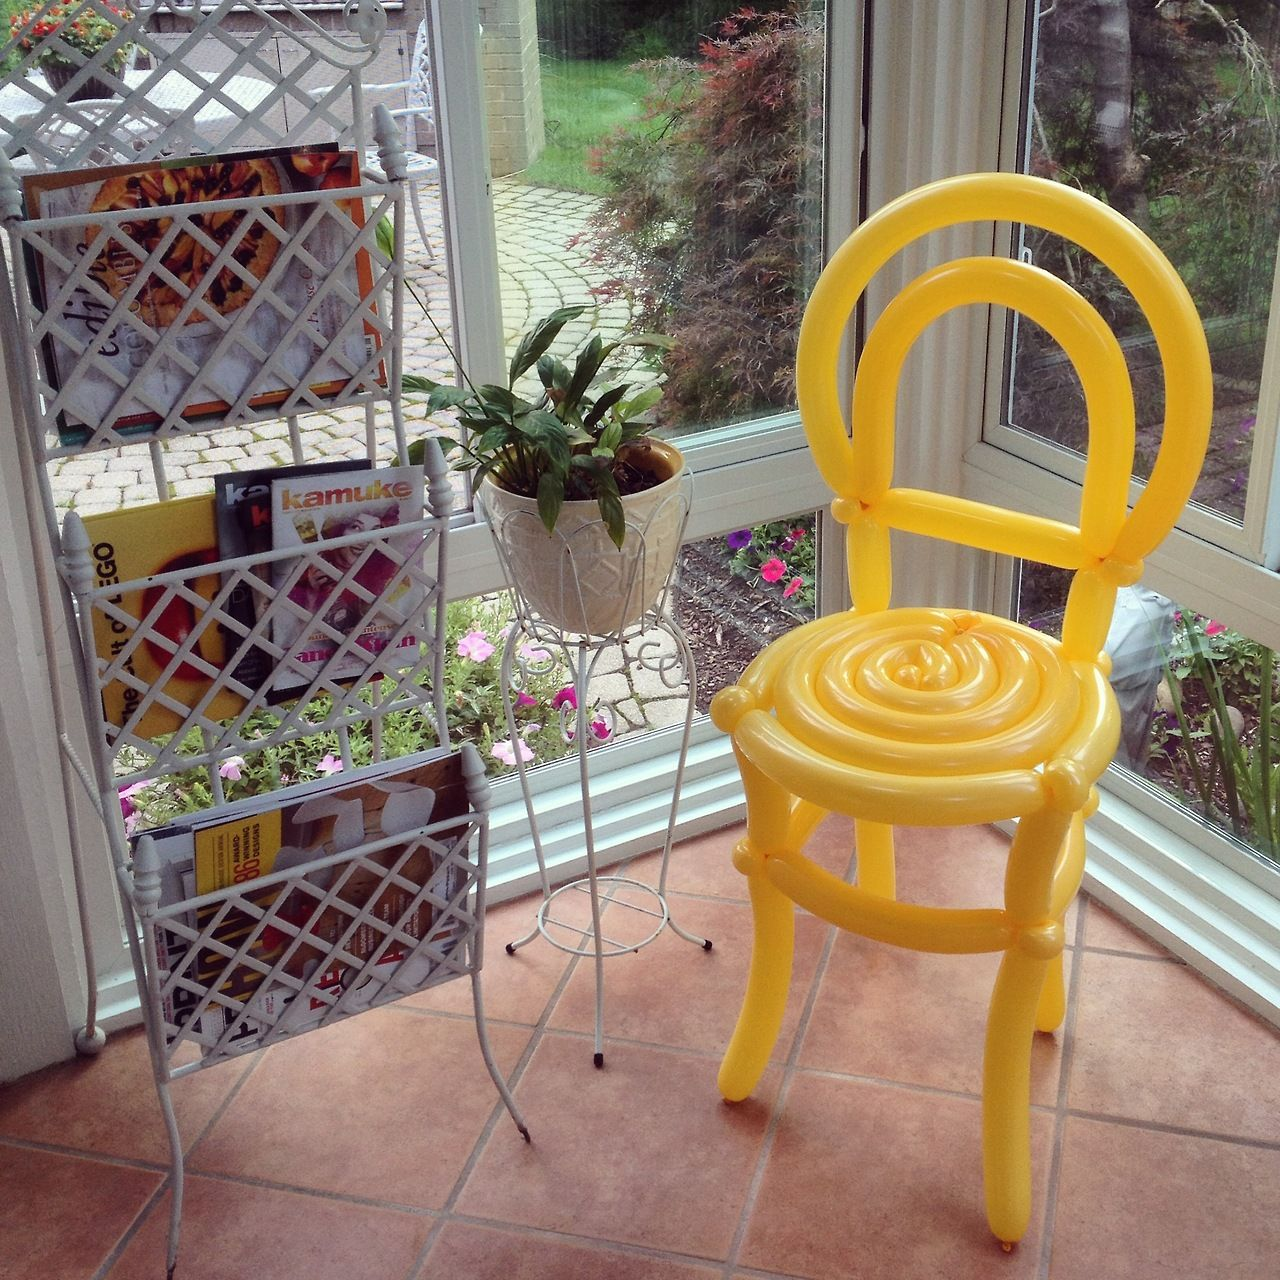 Day 279: Pull up a Chair